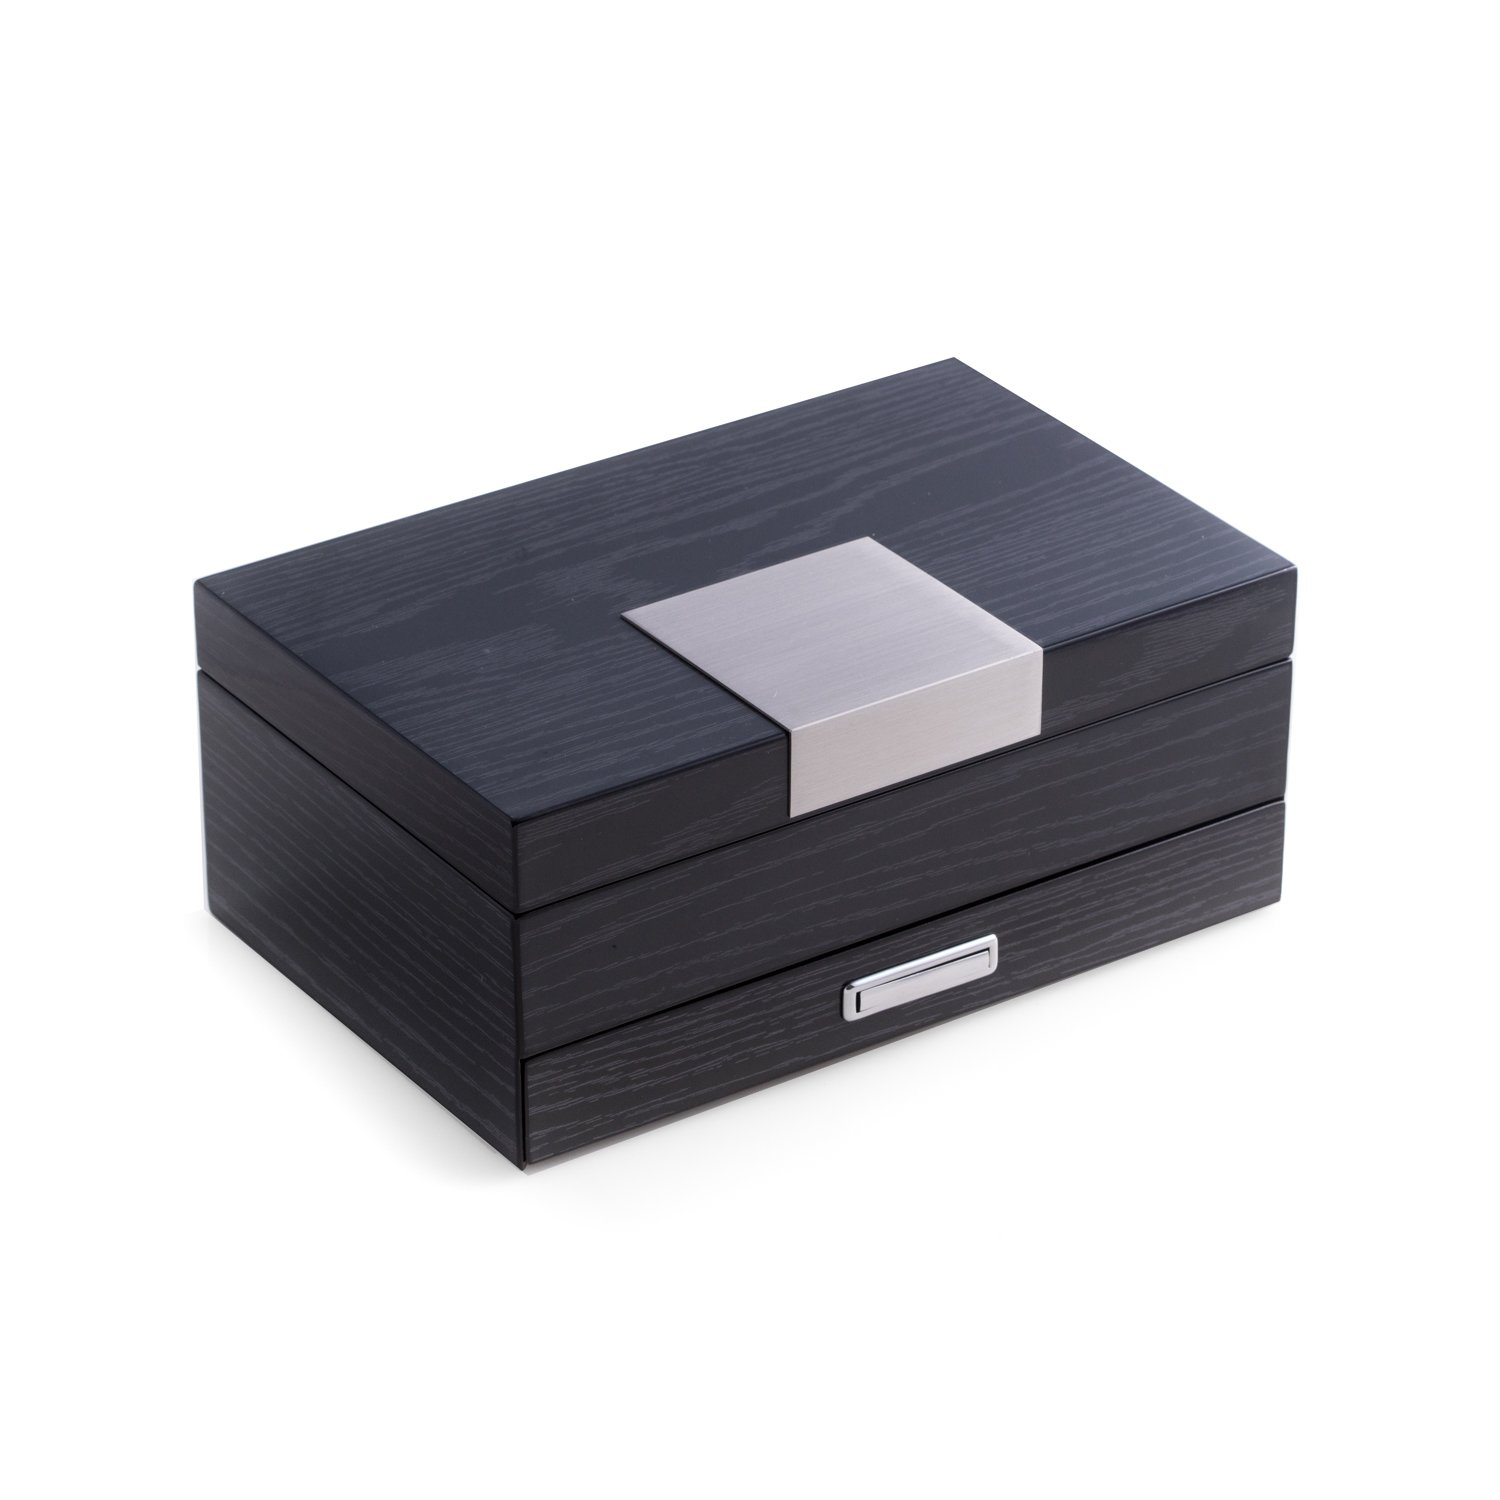 Time Factory AJ-BB671STL ''Steel '' Lacquered 2 Level Jewelry Box, Gray